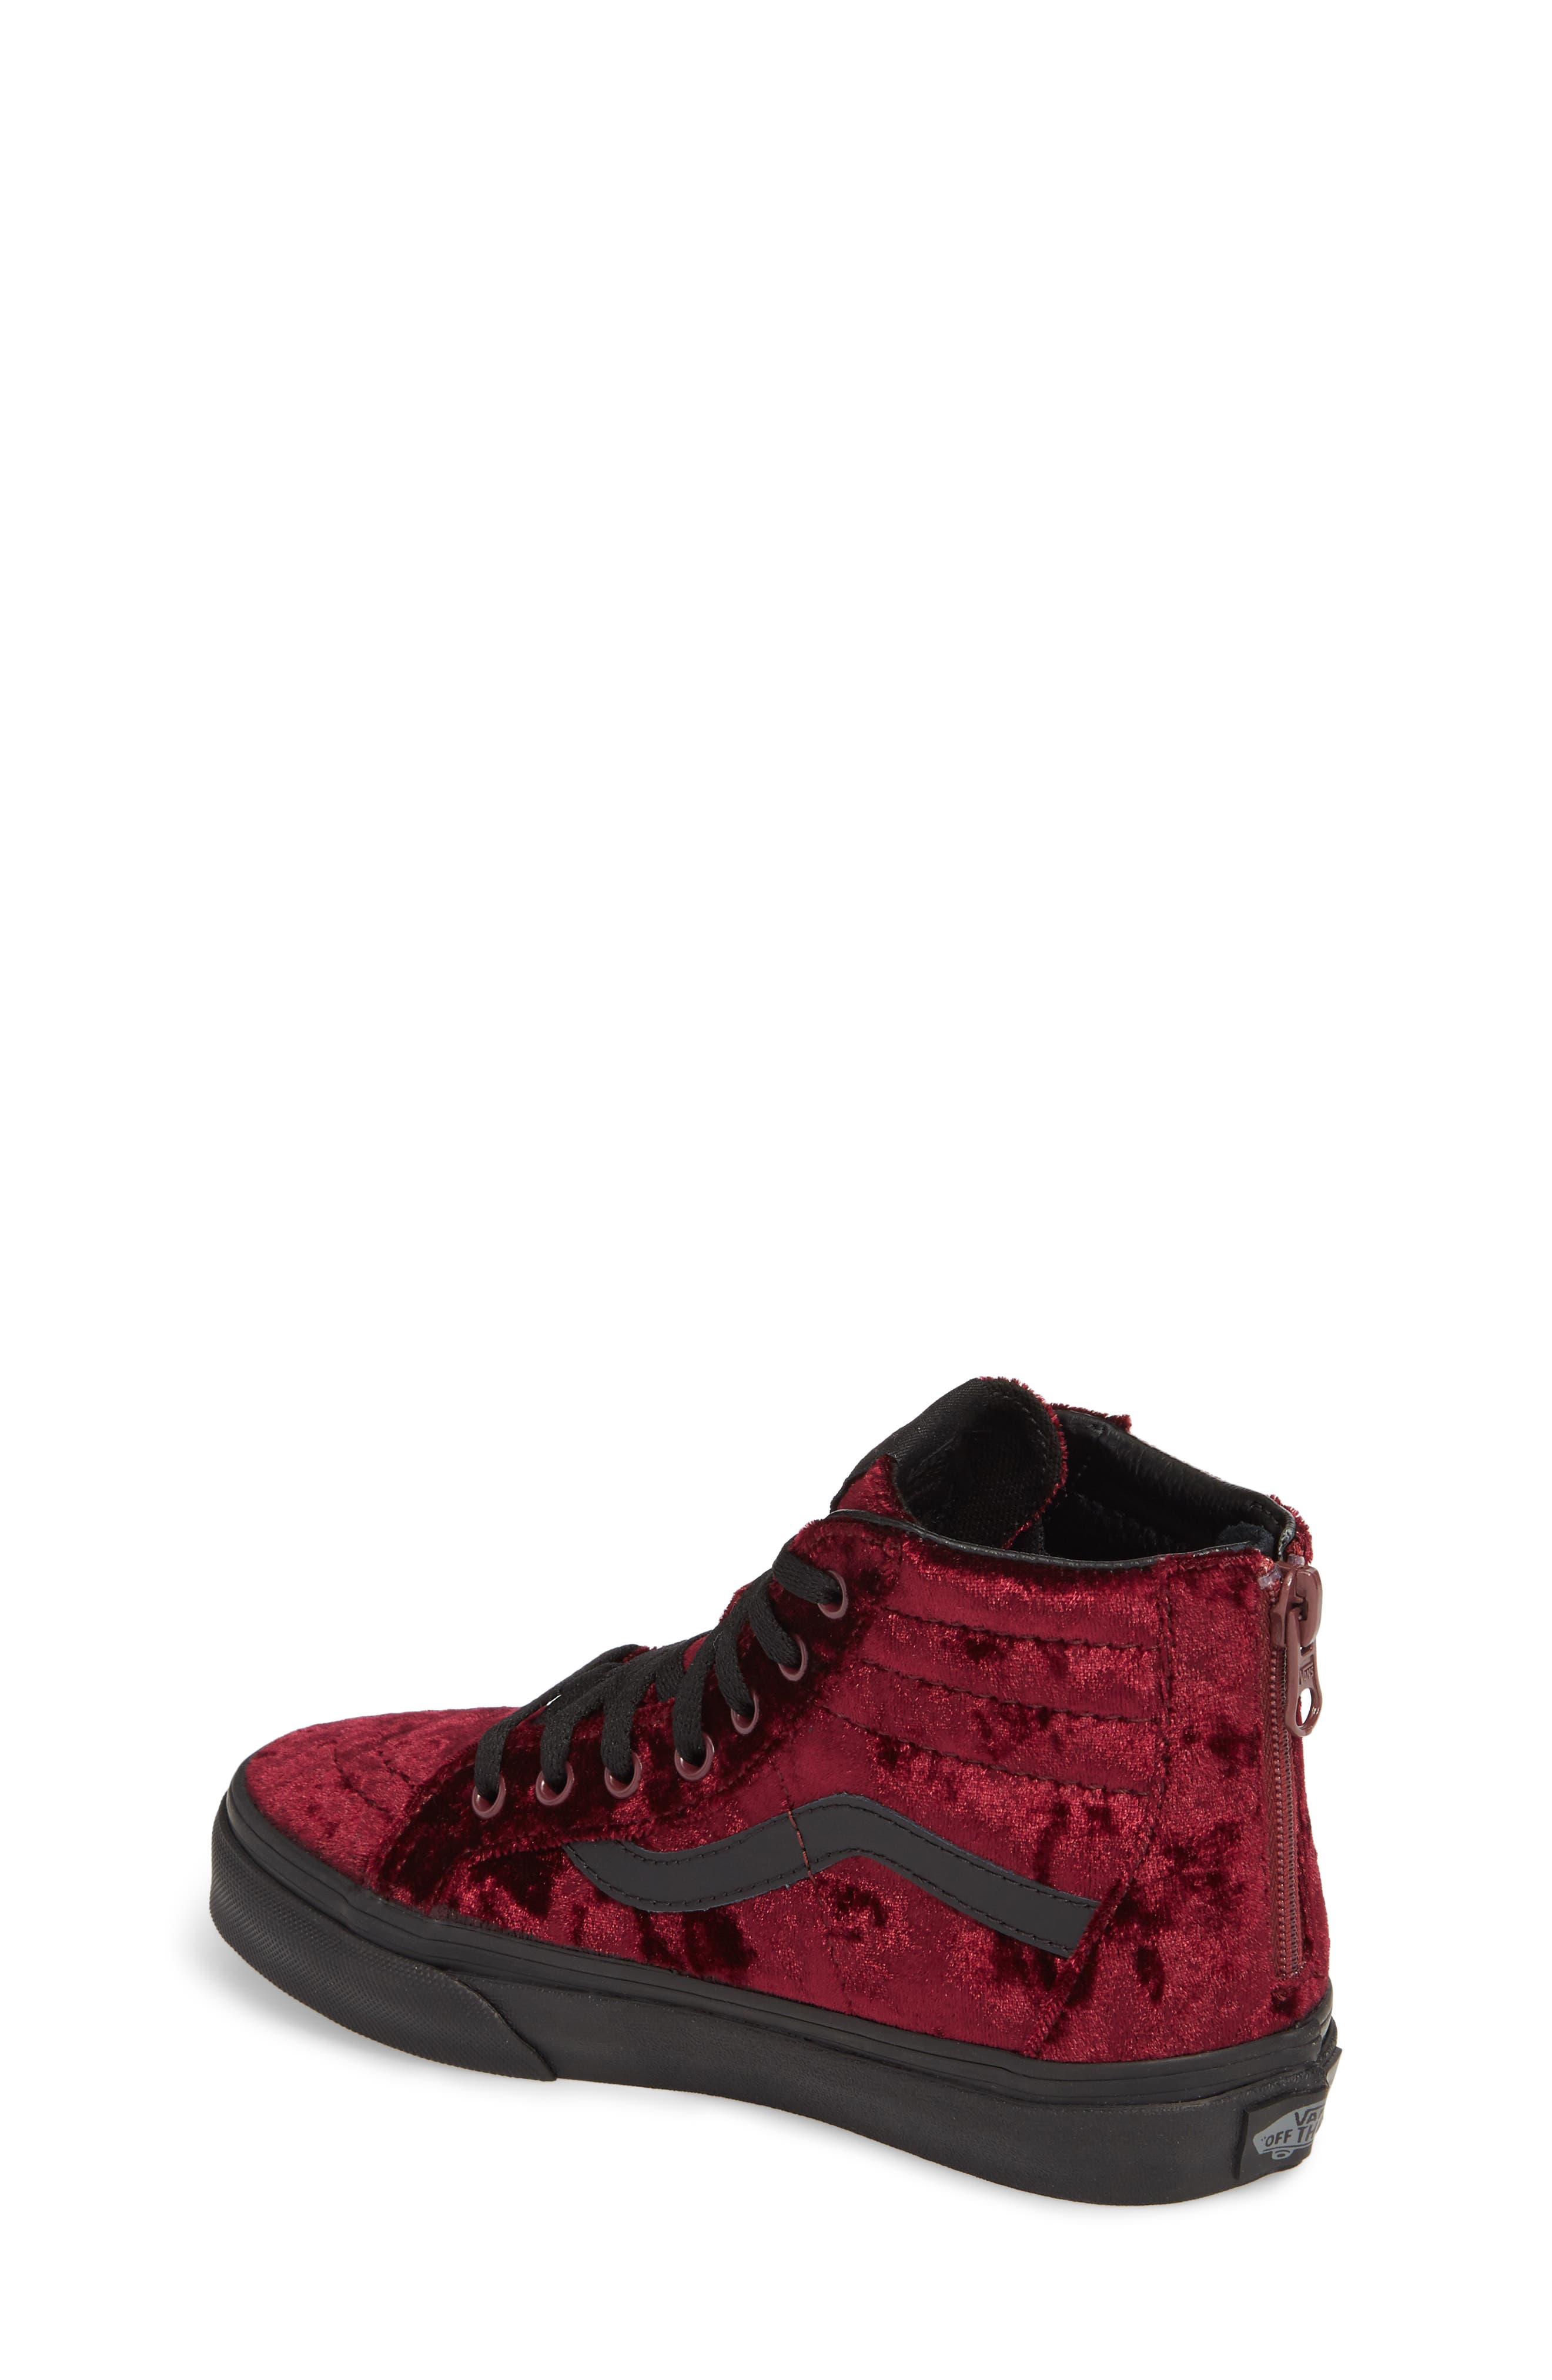 SK8-Hi Zip Sneaker,                             Alternate thumbnail 2, color,                             Red/ Black